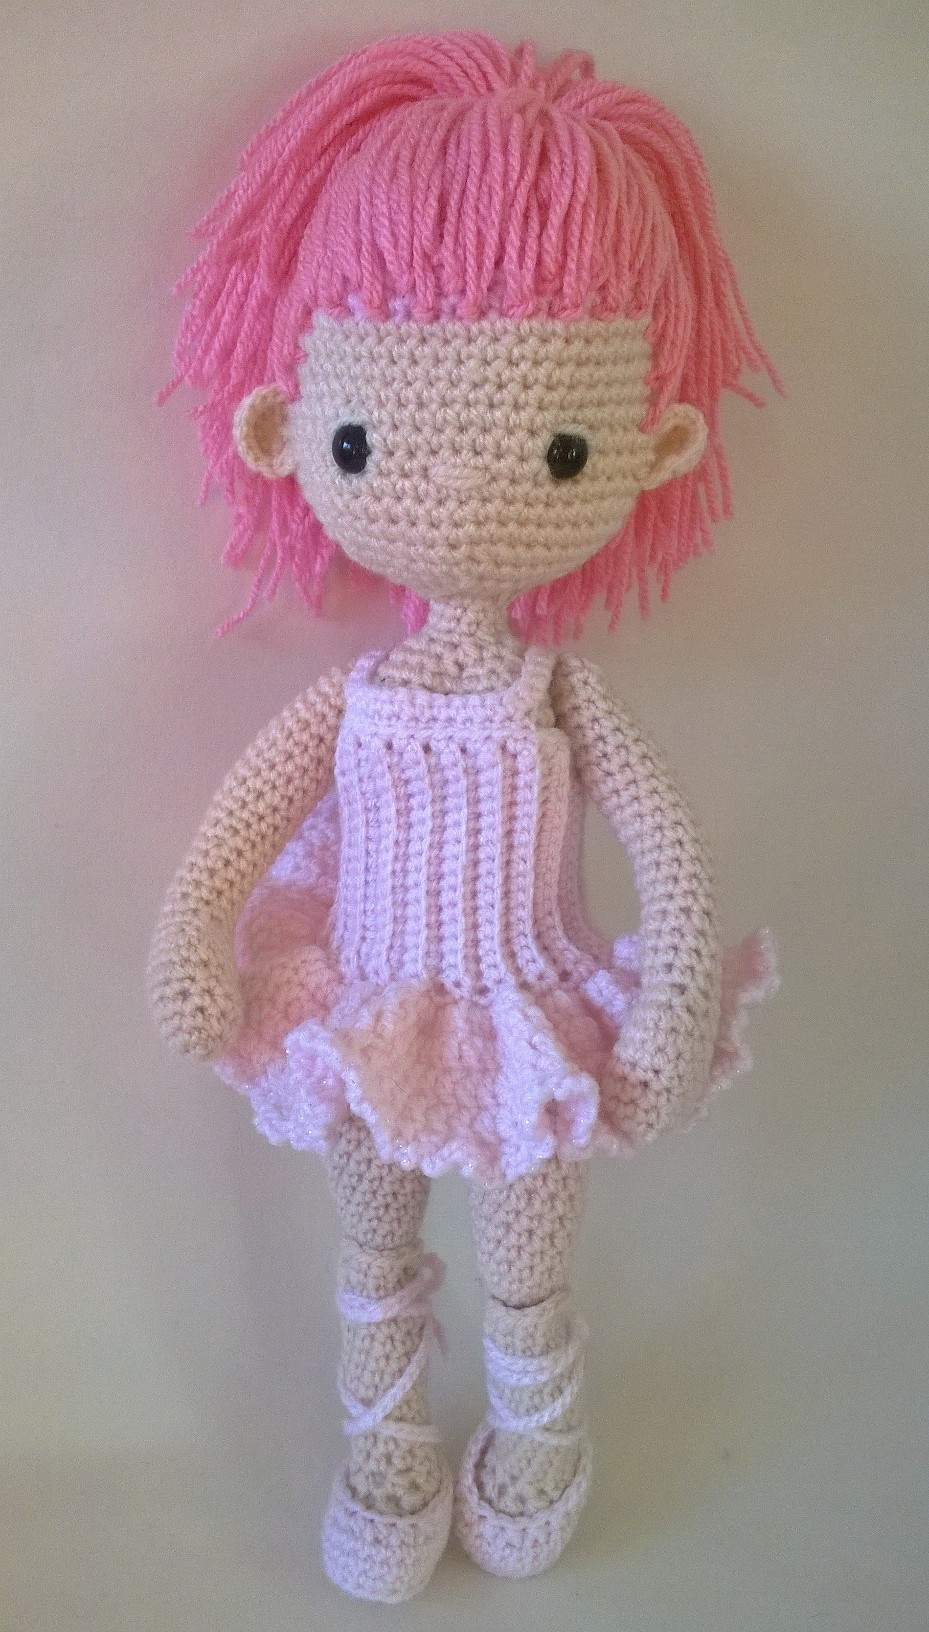 Knitting Pattern Ballerina Doll : My Little Crochet Doll   Ballerina   Betty Virago